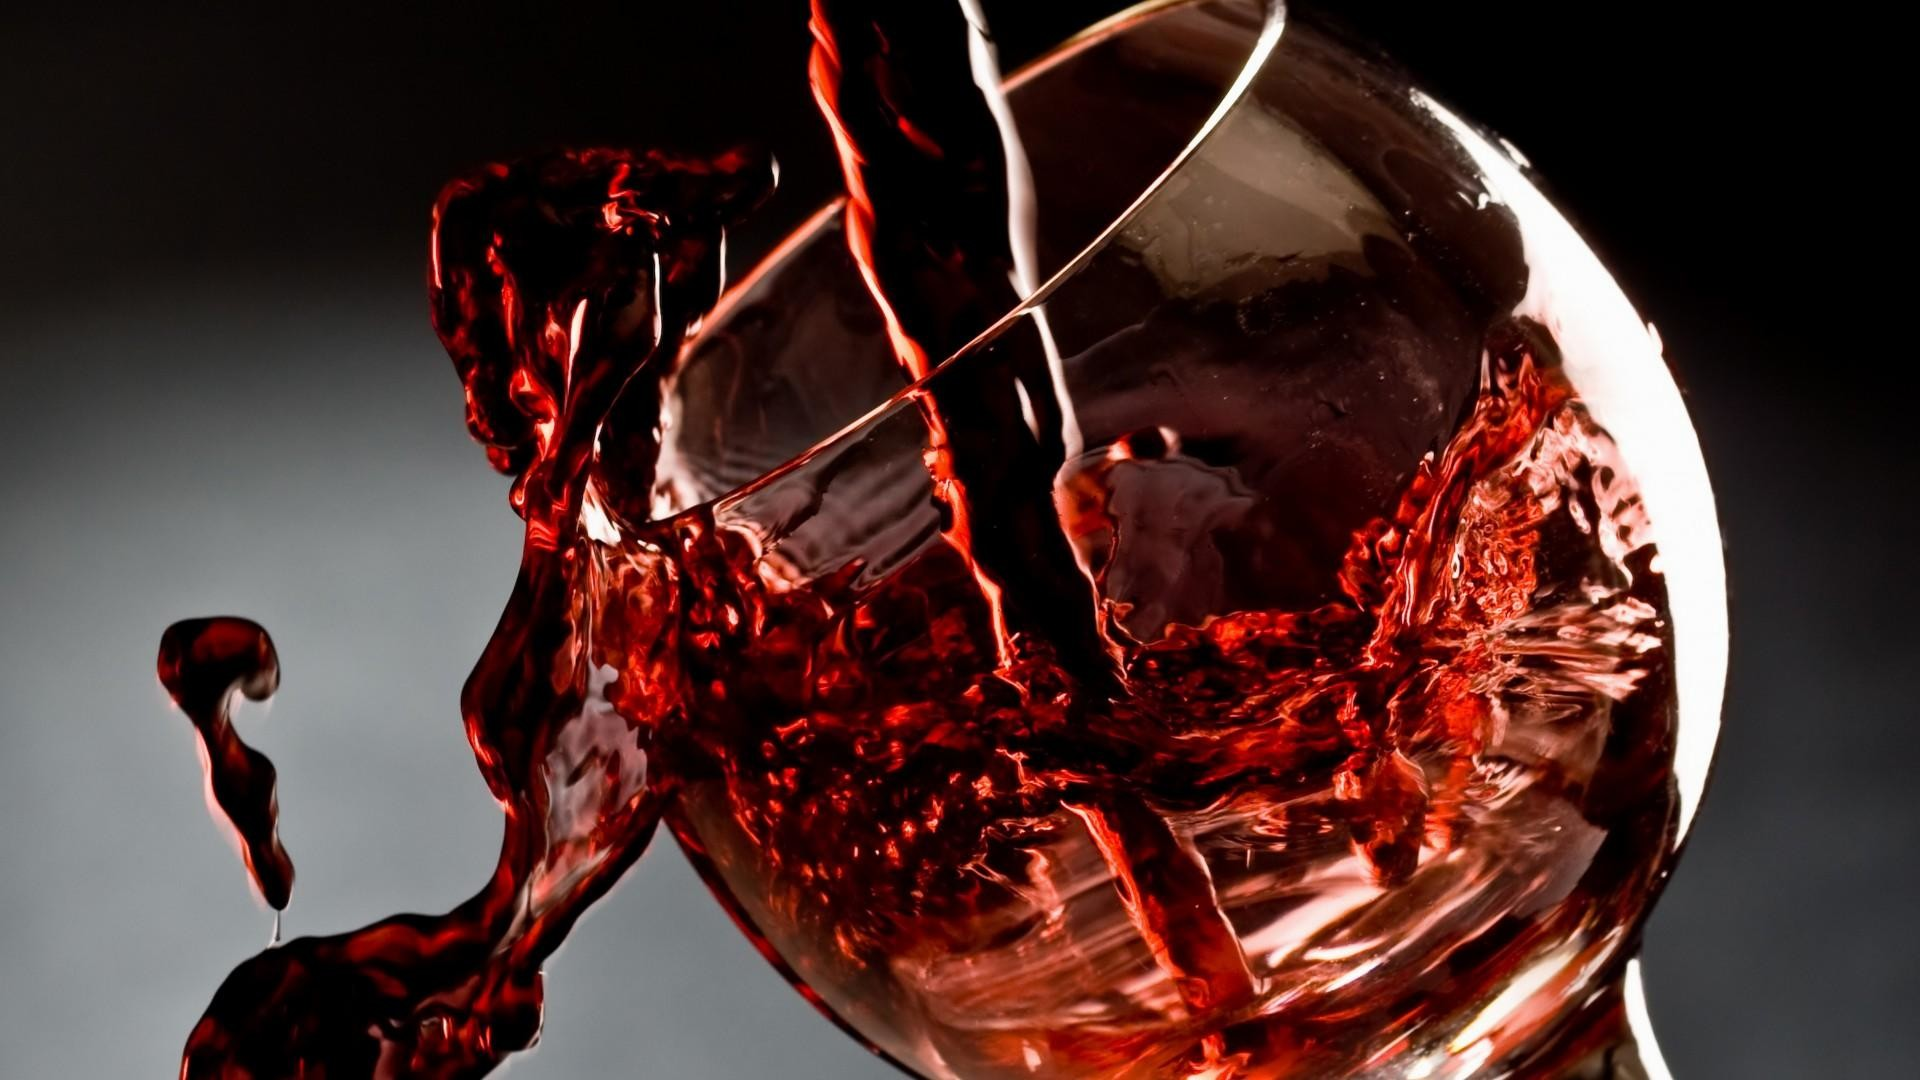 red wine wallpaper 183��